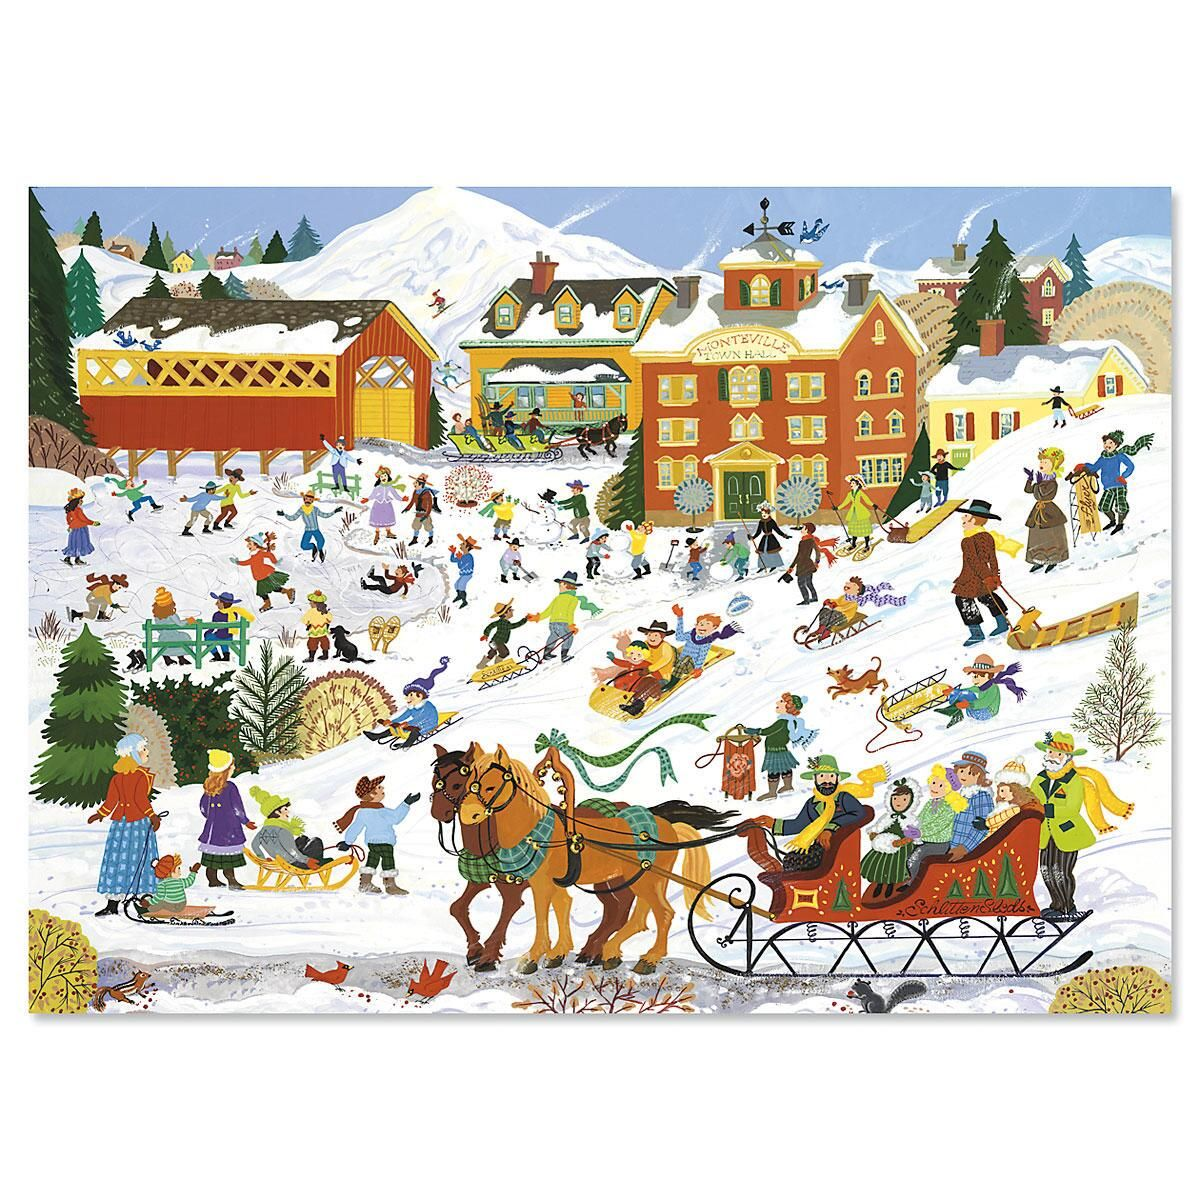 Winter Sports Nonpersonalized Christmas Cards - Set of 72